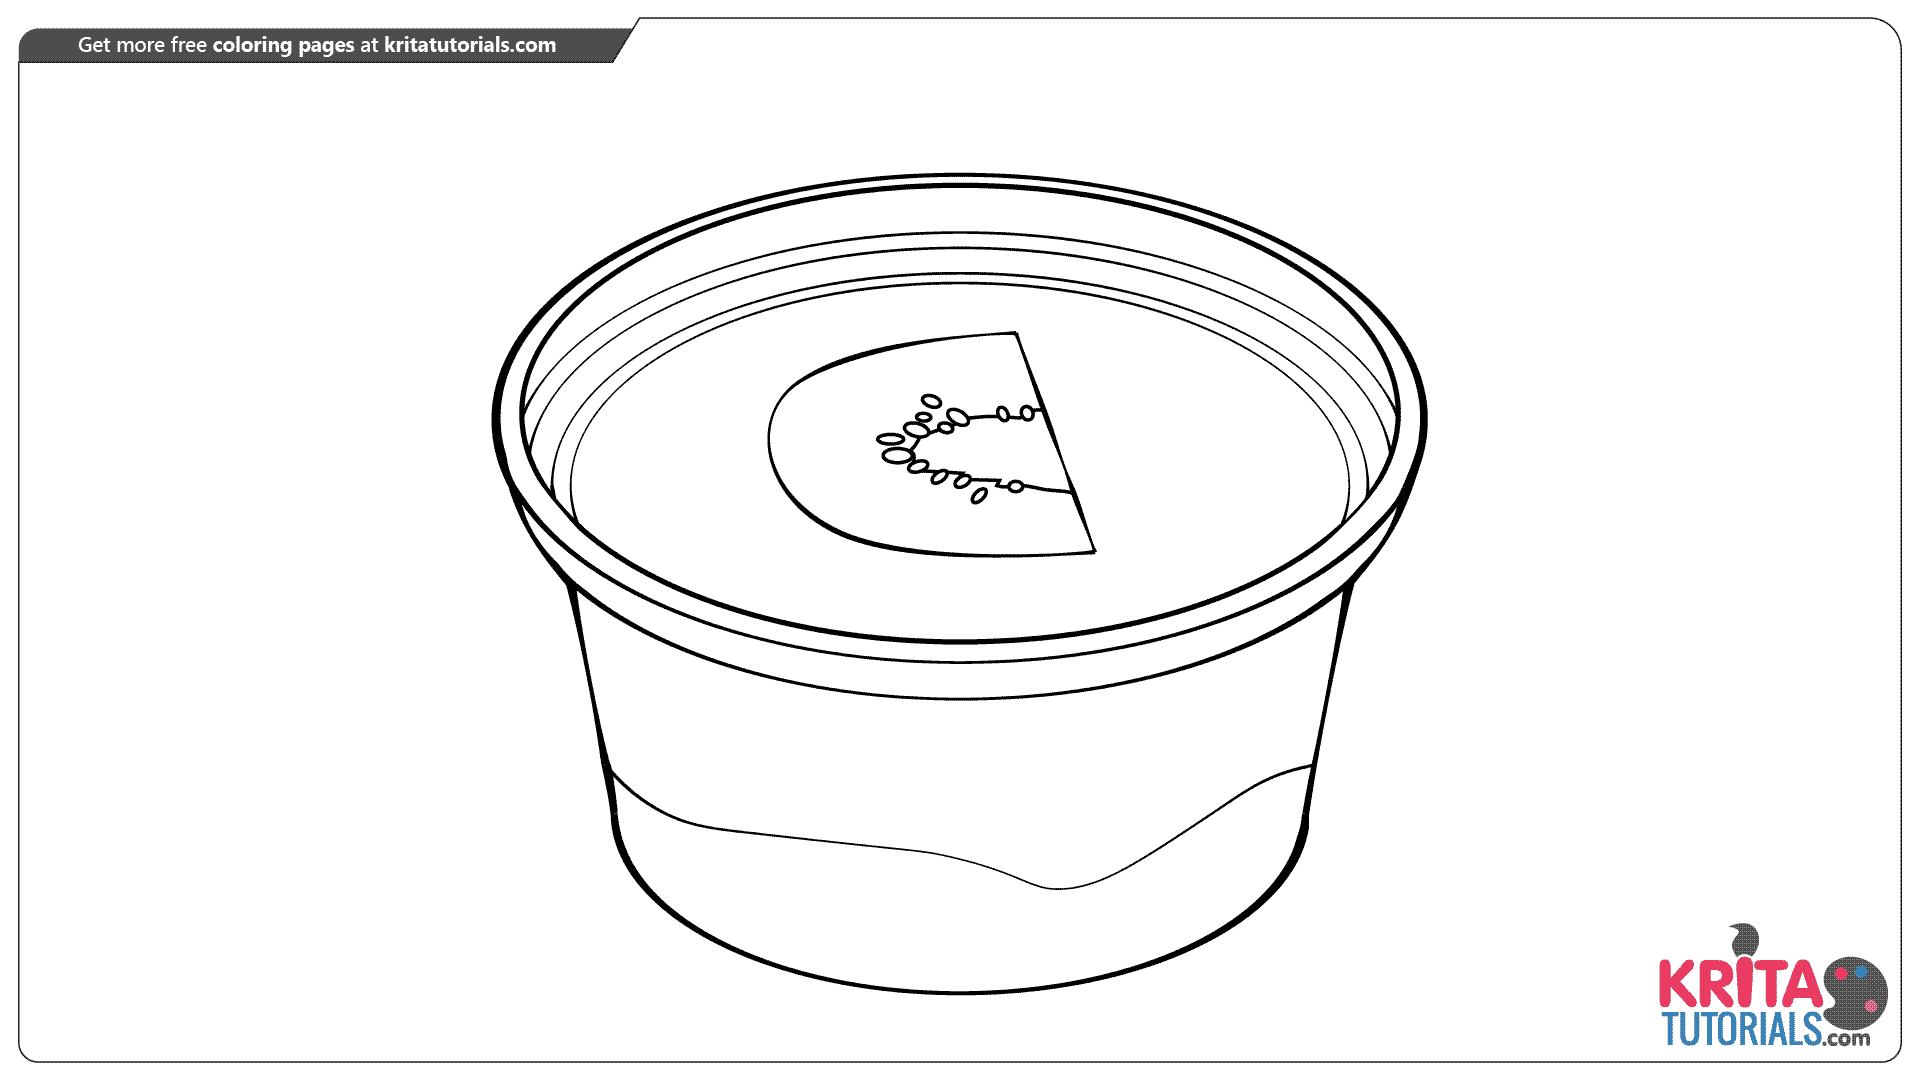 Pudding coloring page from kritatutorials.com